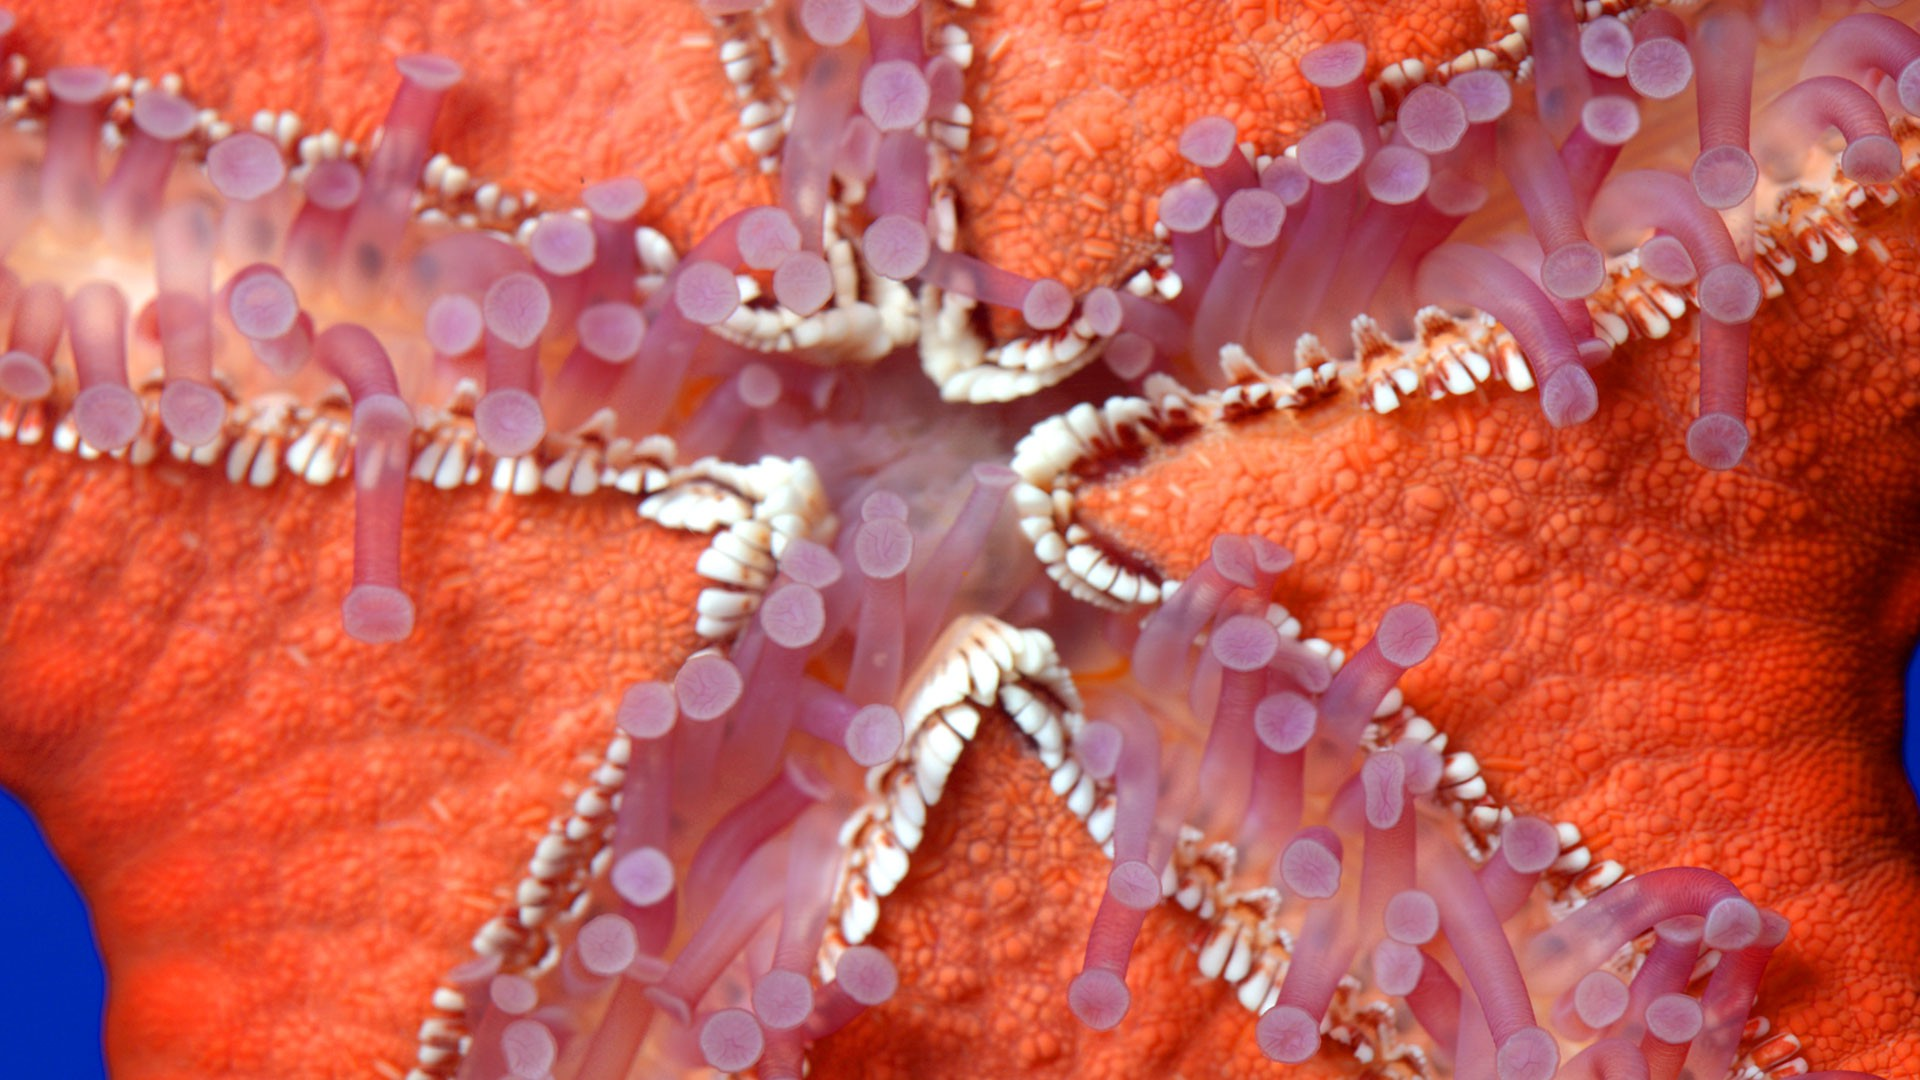 Mediterranean Red Sea Star